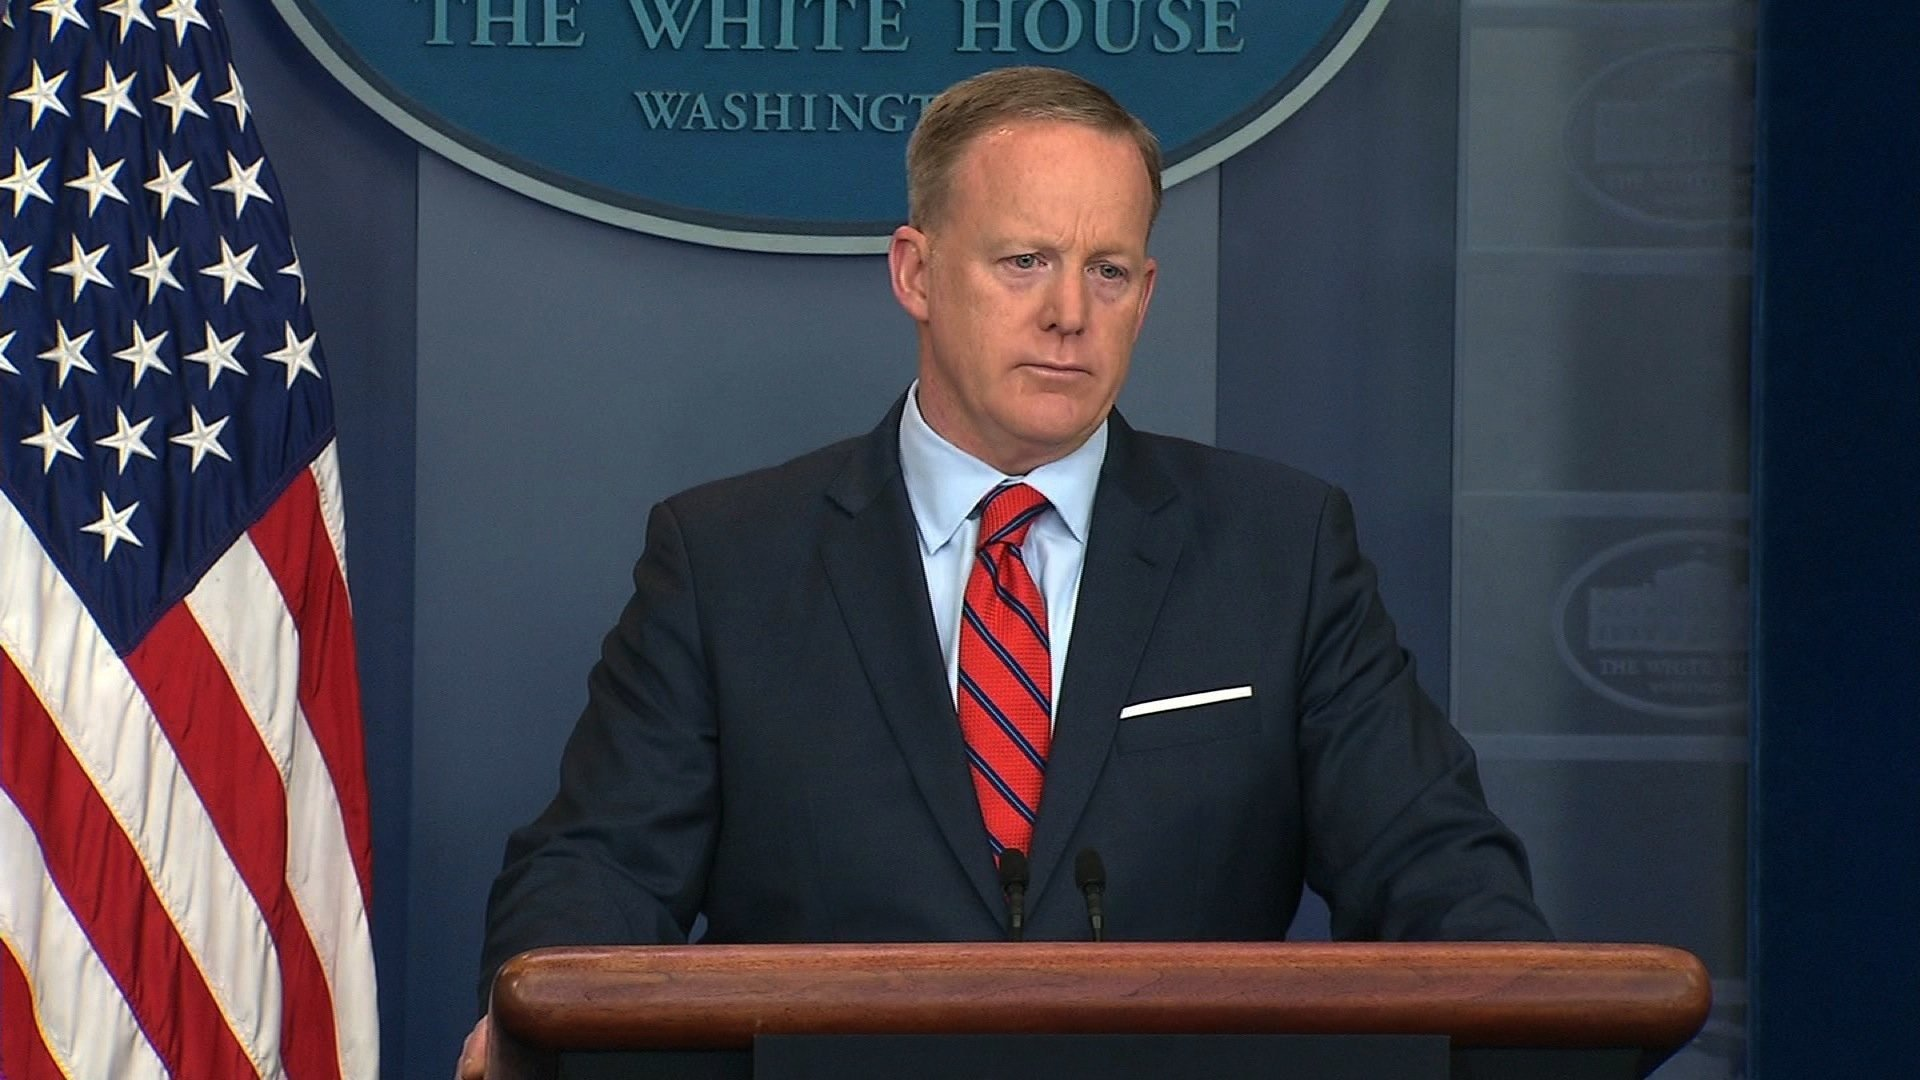 White House spokesman Sean Spicer offers fresh apology over Hitler reference